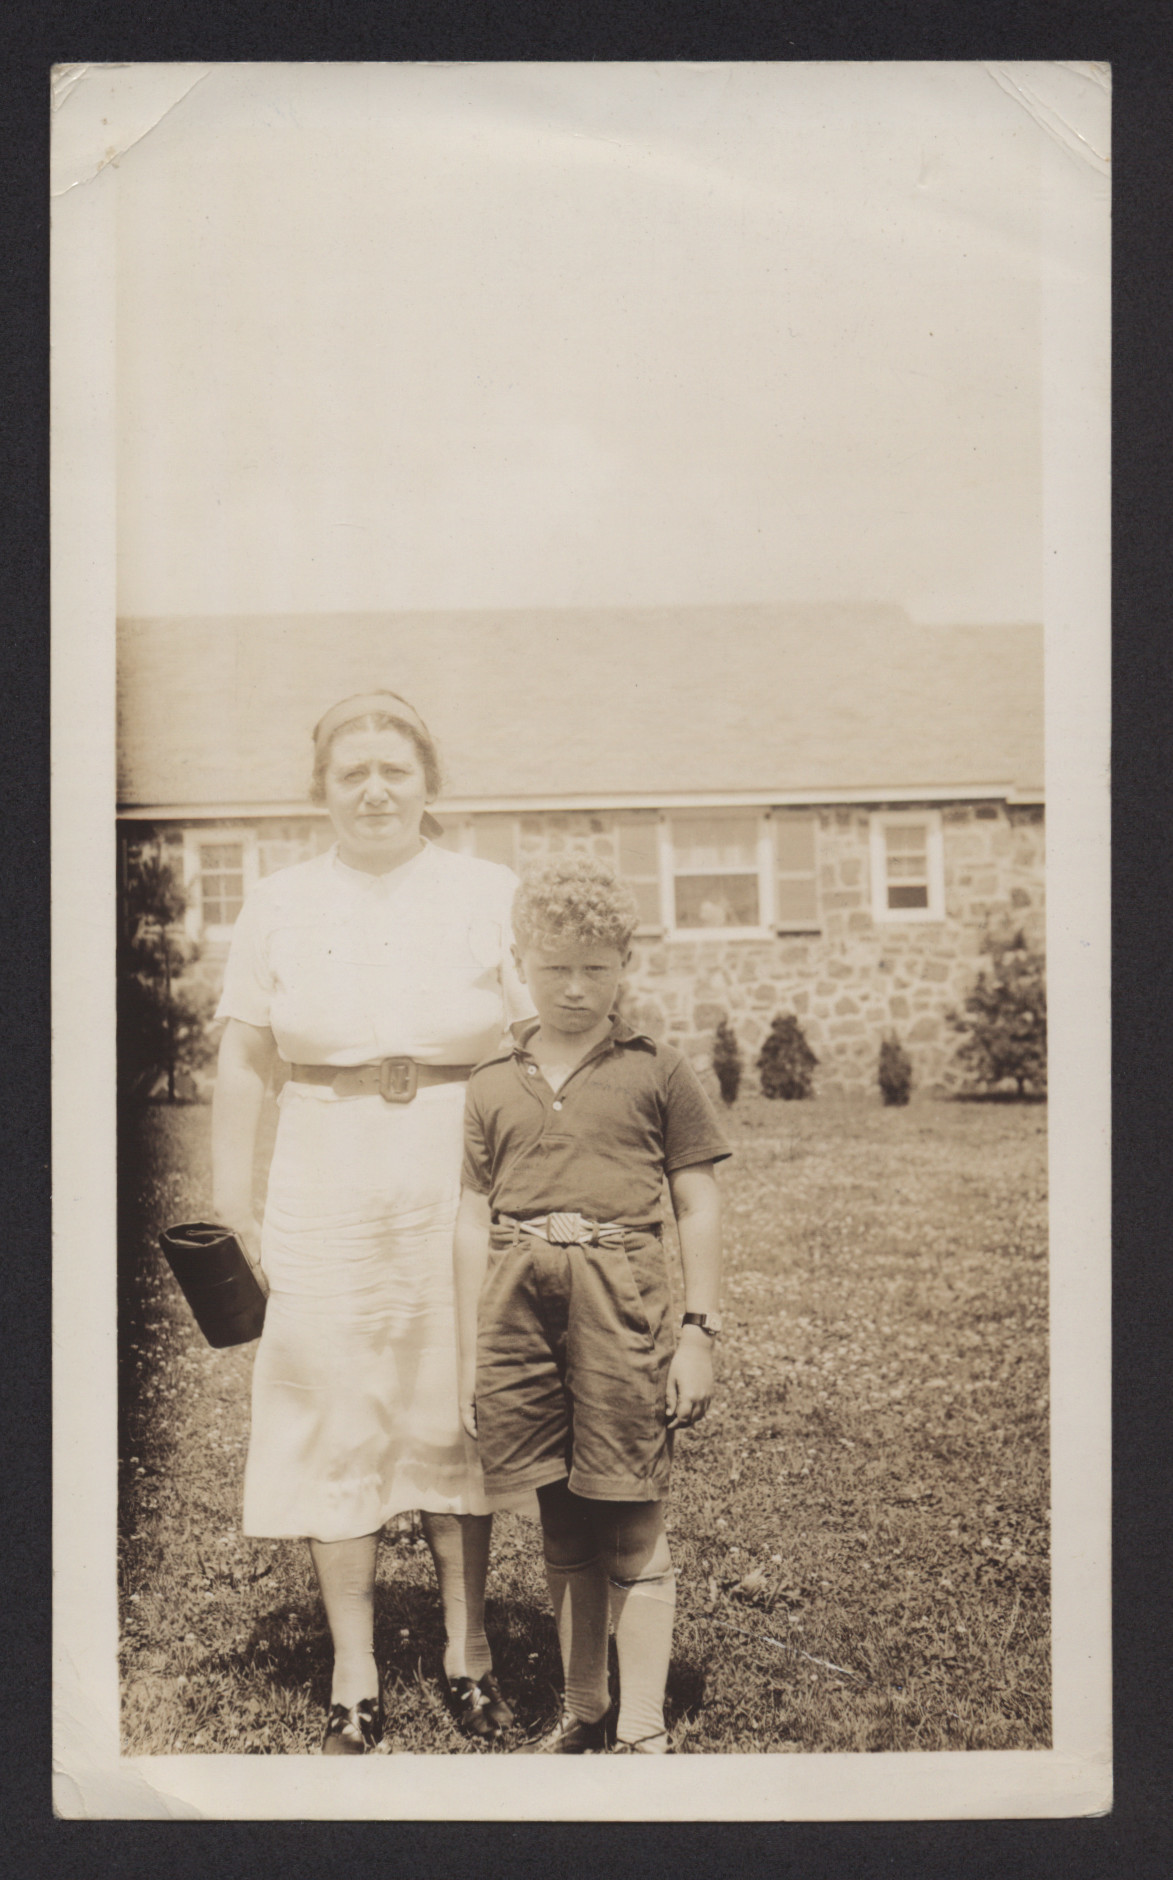 Erwin Tepper and his paternal aunt Blima Eigenmacht, at the Brith Shalom children's camp near Philadelphia.